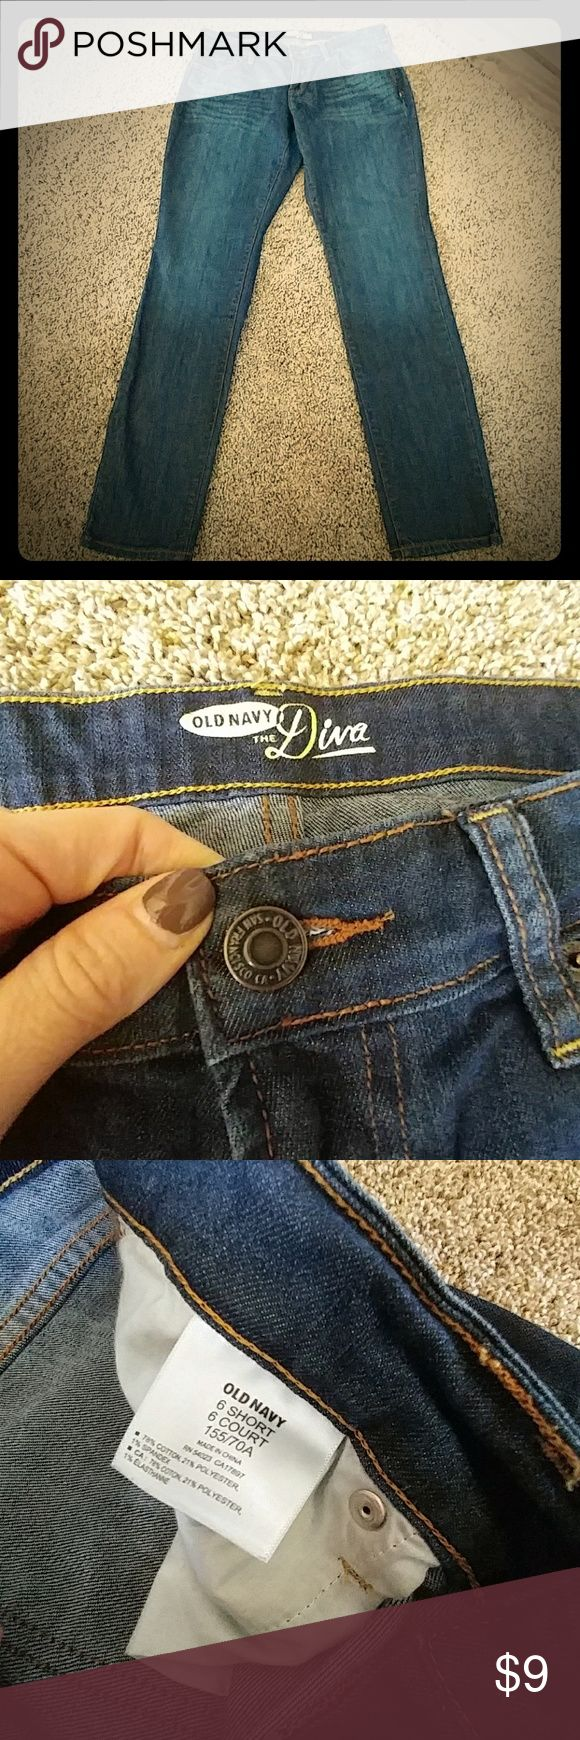 """Old Navy """"Diva"""" Jeans These are practically new WITHOUT the tags, in almost perfect condition!! Ultra soft denim with some stretch.  For curvy ladies ;)  Size 6 short. Dark, rich cobalt blue, orange stitching. I wish these fit me....I'd keep them!! They are the ideal, versatile pair of jeans to dress up with a tunic and heels or dress down with sneakers and a T-shirt. Inseam measures 28 in. Thanks!! :) Old Navy Jeans"""